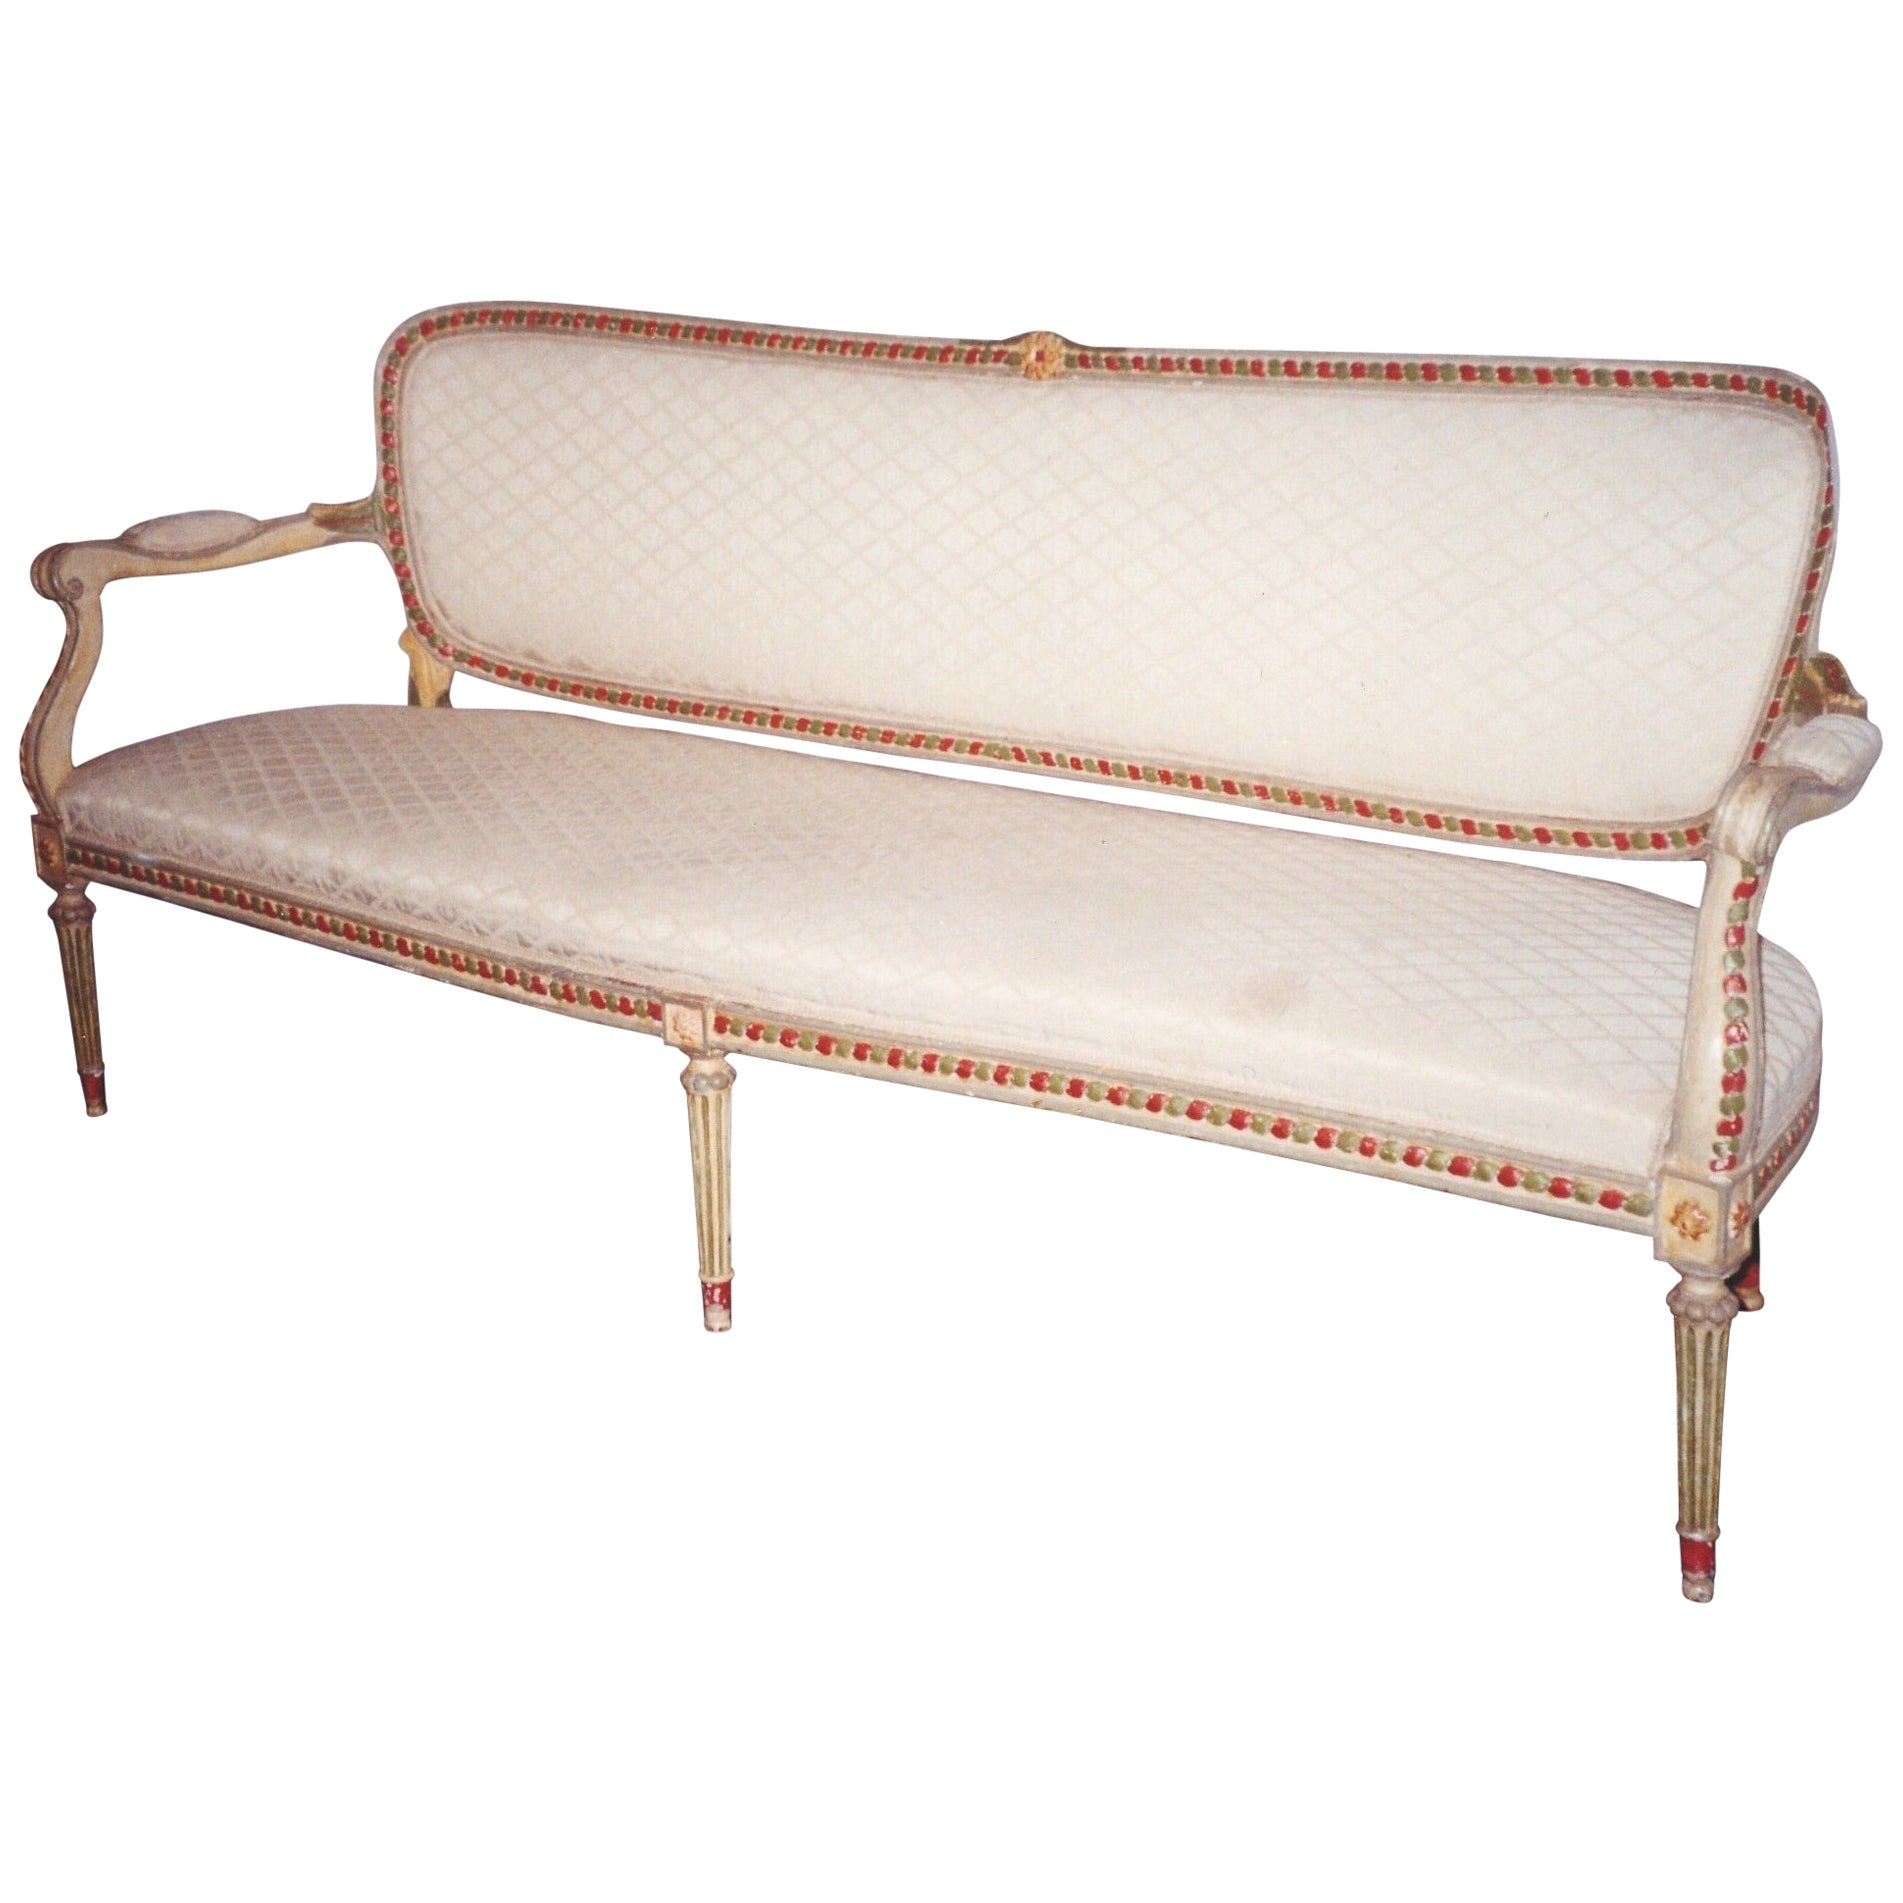 Elegant Nord Italian 18th Century Painted Sofa or Canapè